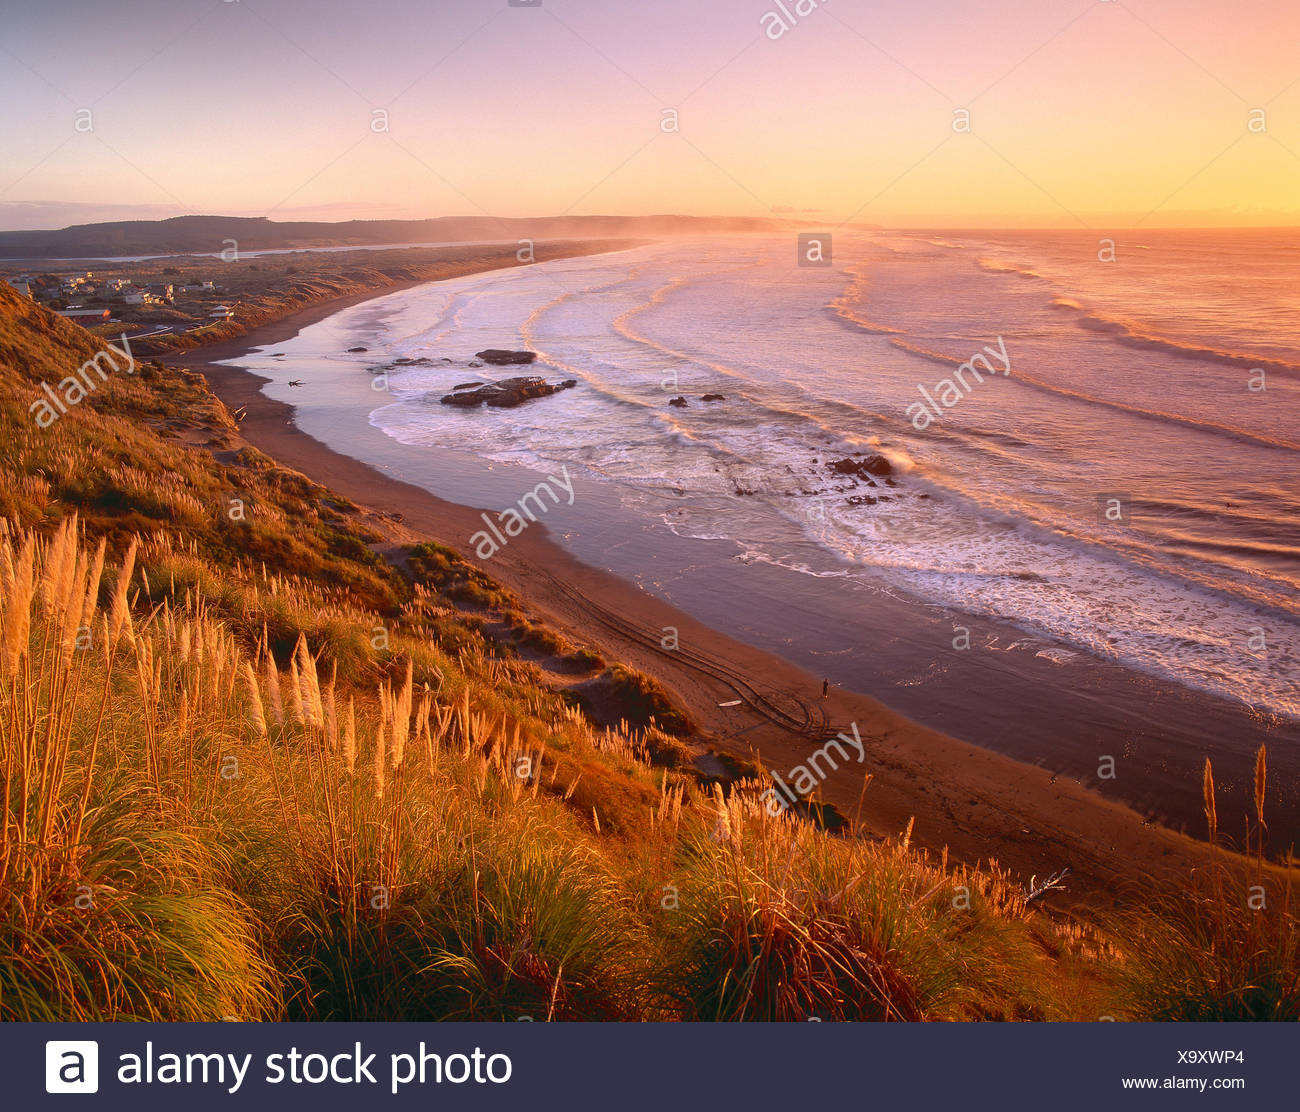 New Zealand. North Island, Port Waikato coast at sunset. - Stock Image